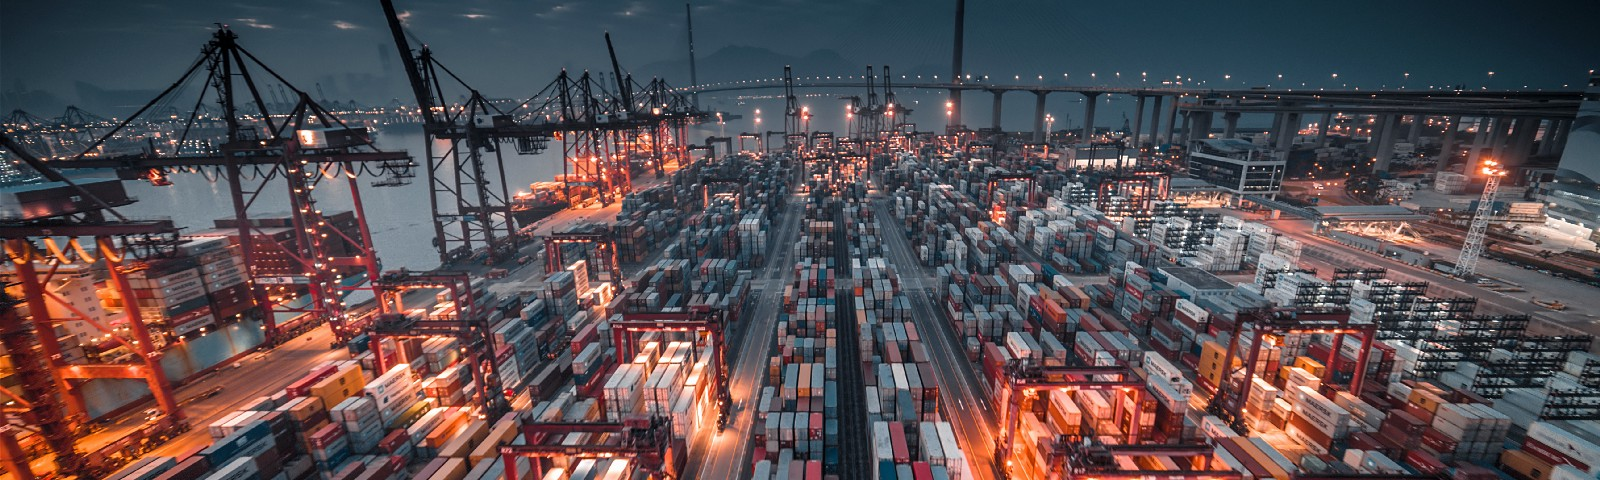 An image of a port with lots of shipping containers stacked up